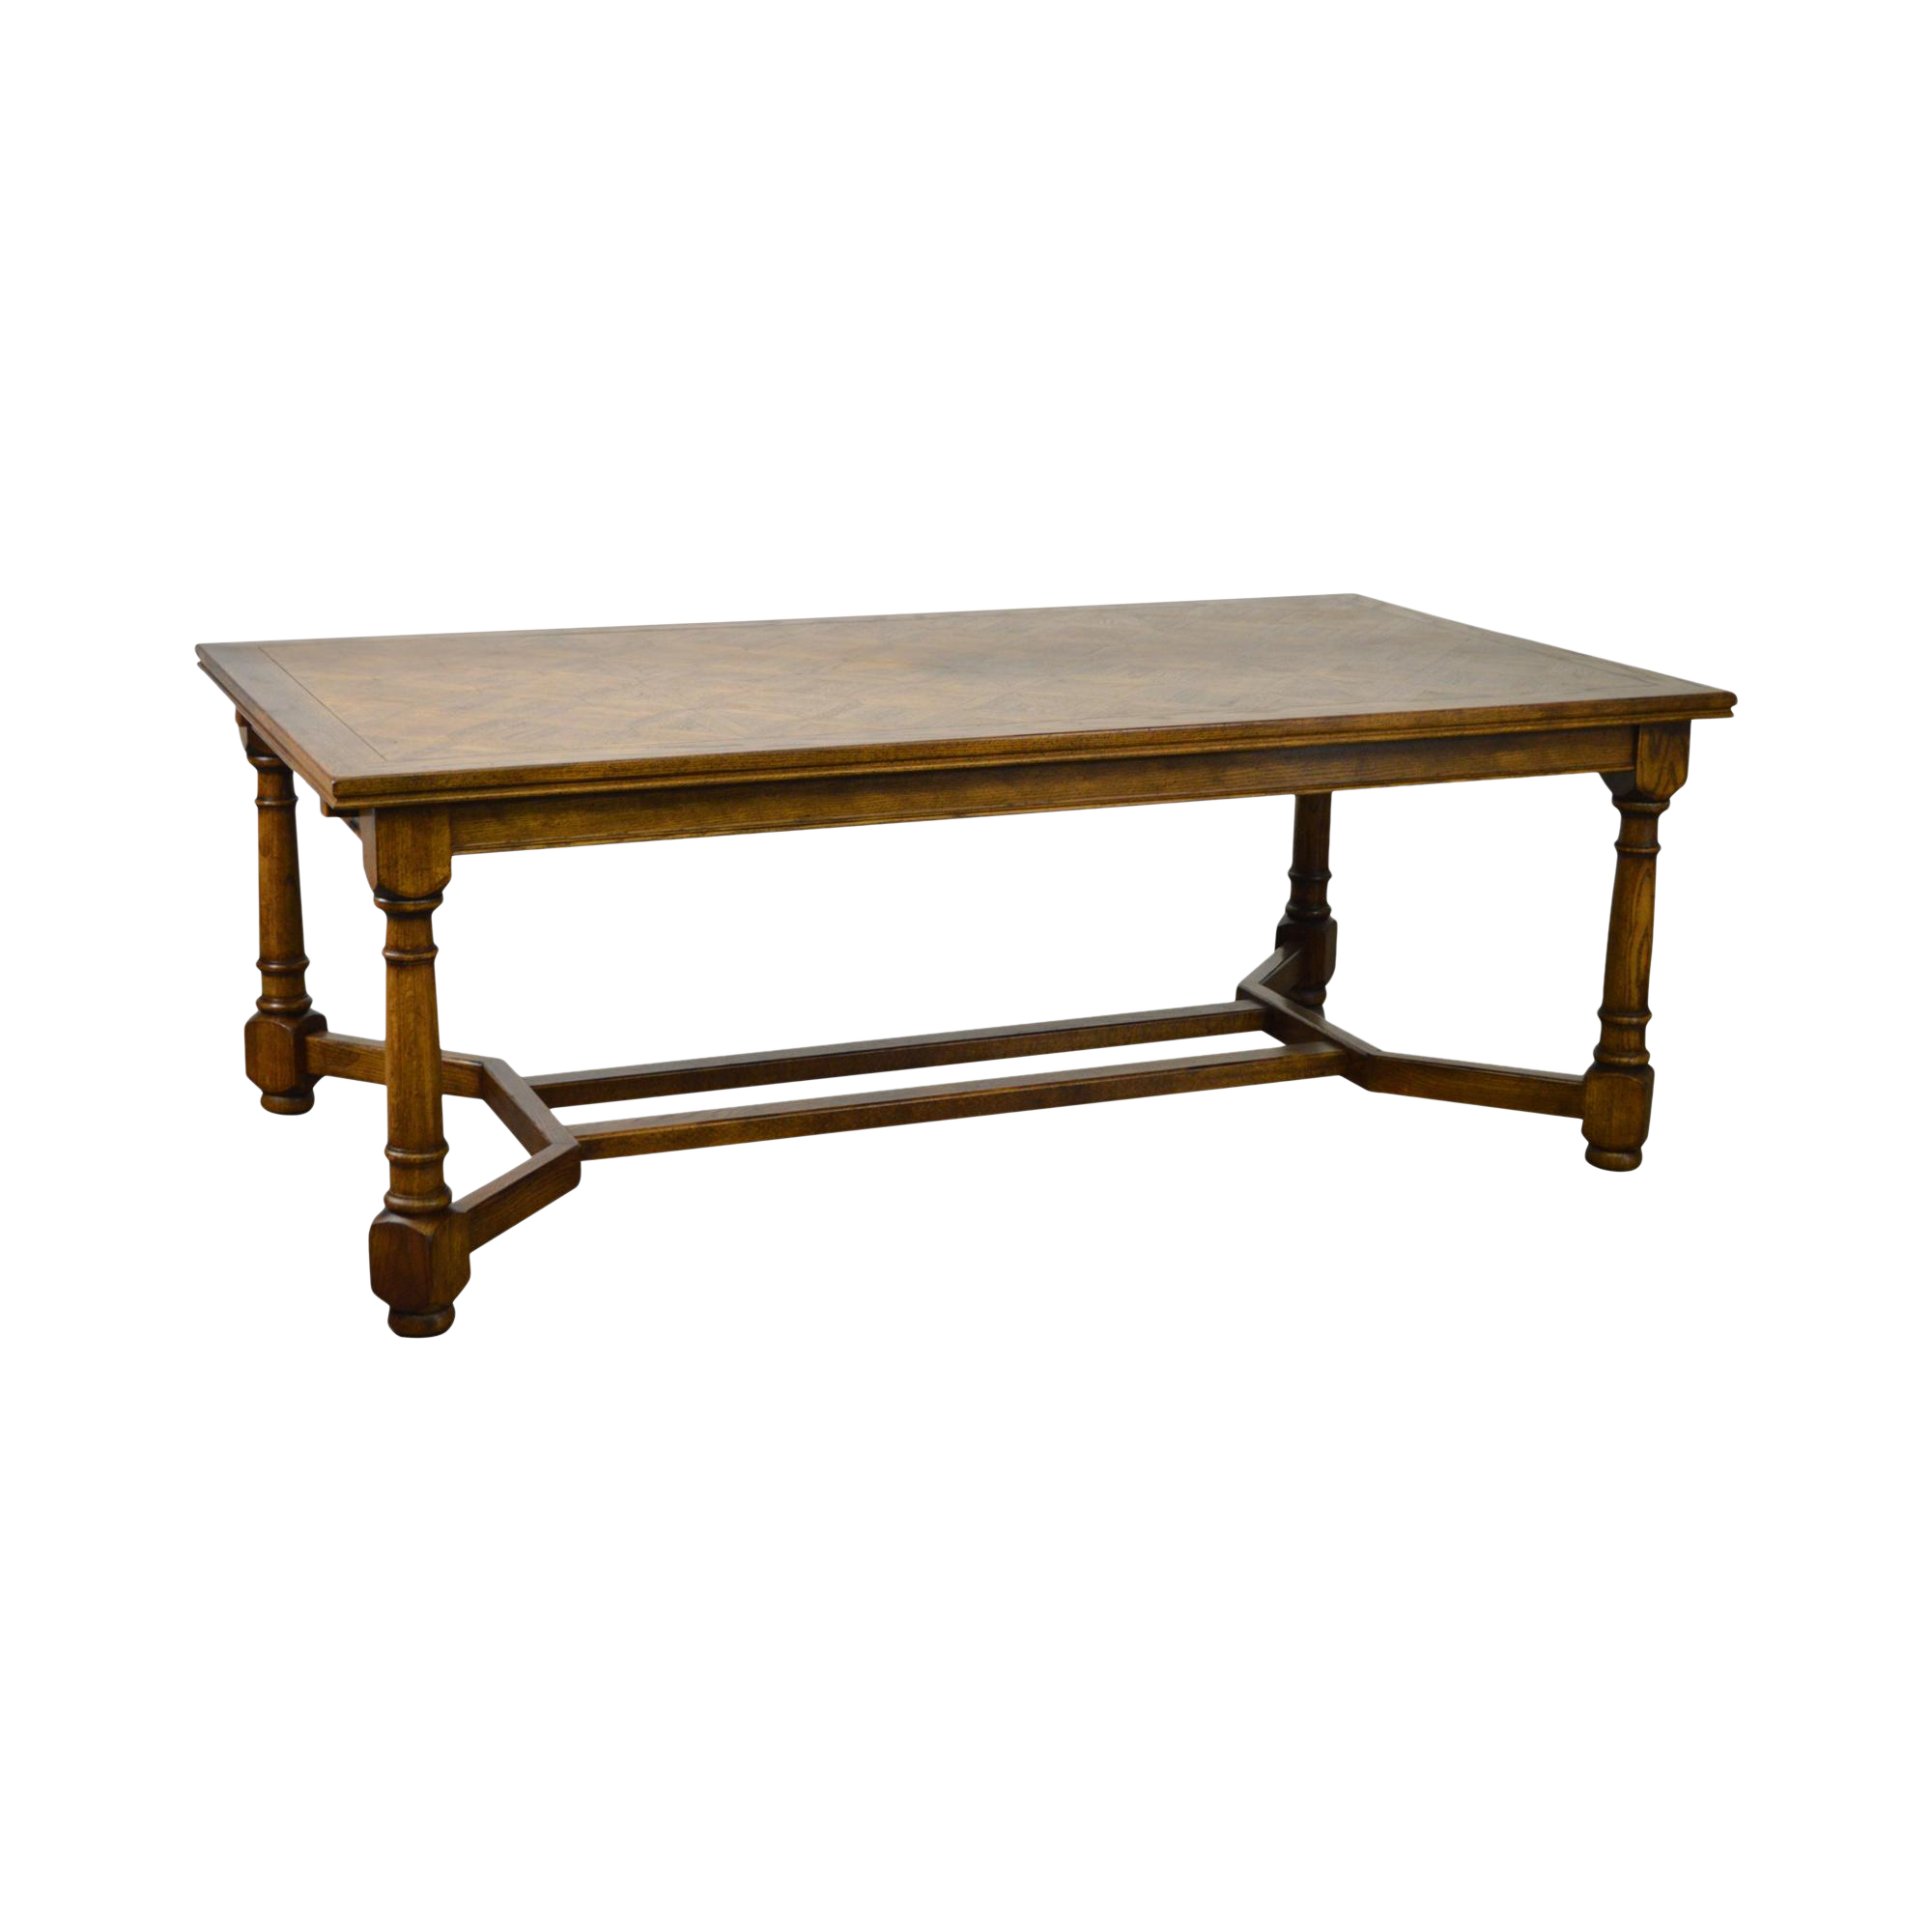 French Country Large 11u0027 Oak Parquet Top Expanding Dining Table